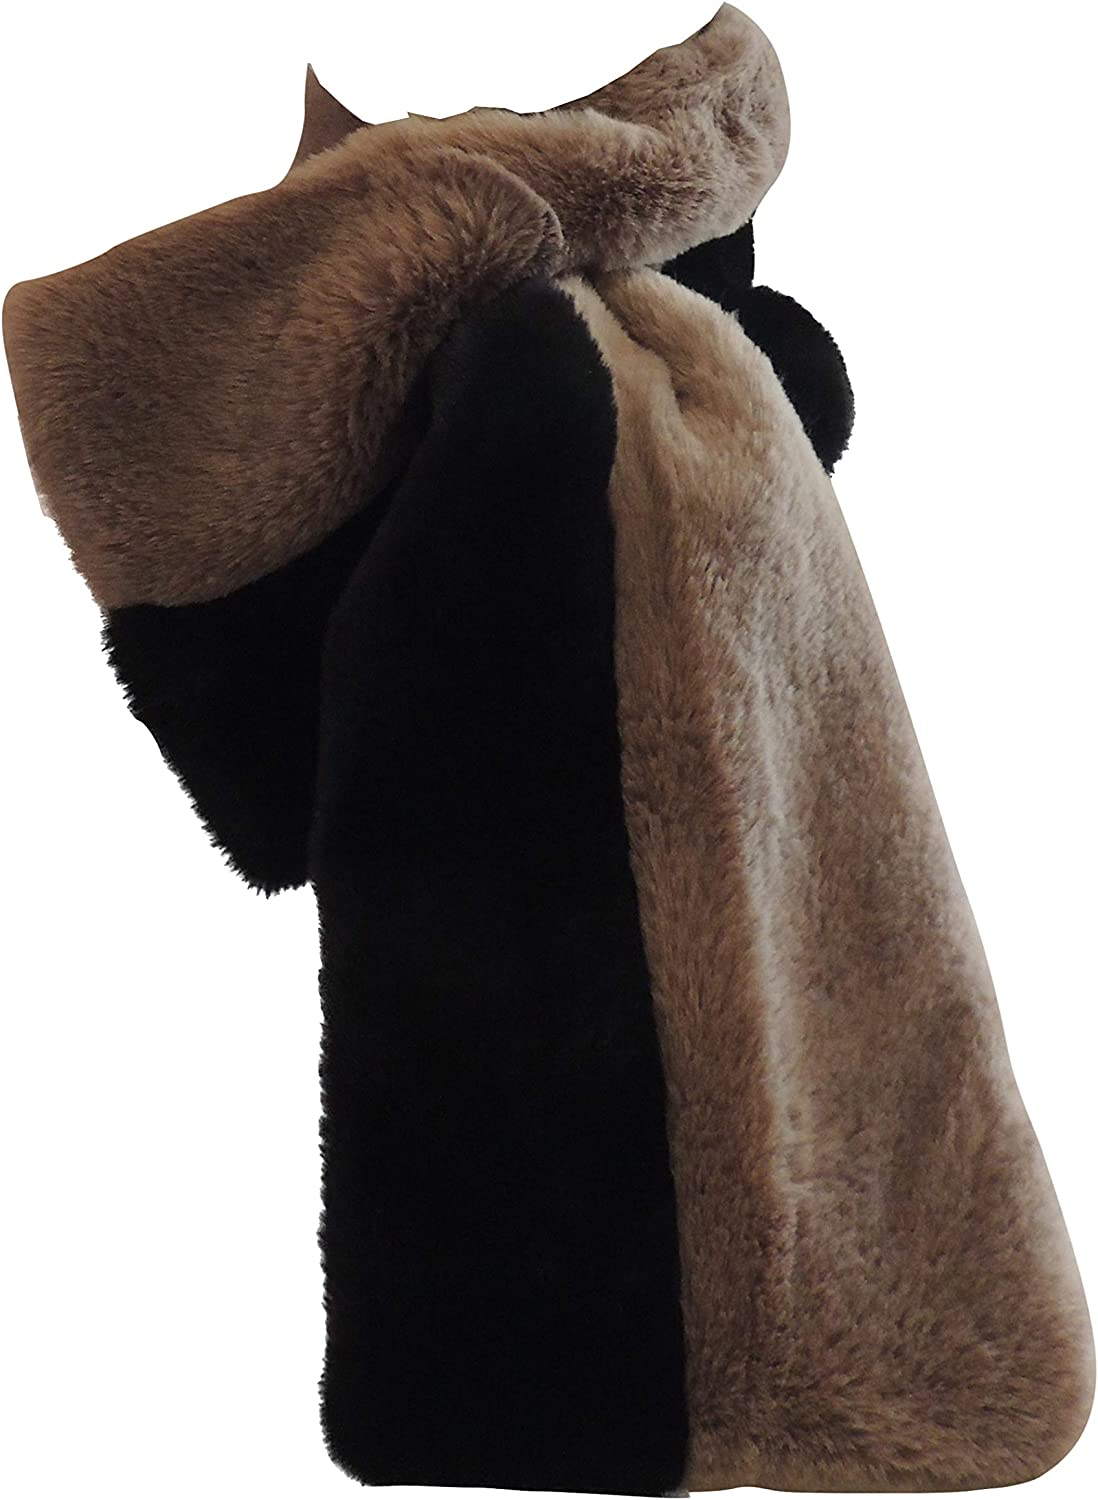 Faux Fur Winter Scarf - Two Neck Adjustable Warmer 5% OFF Soldering Toned Plush